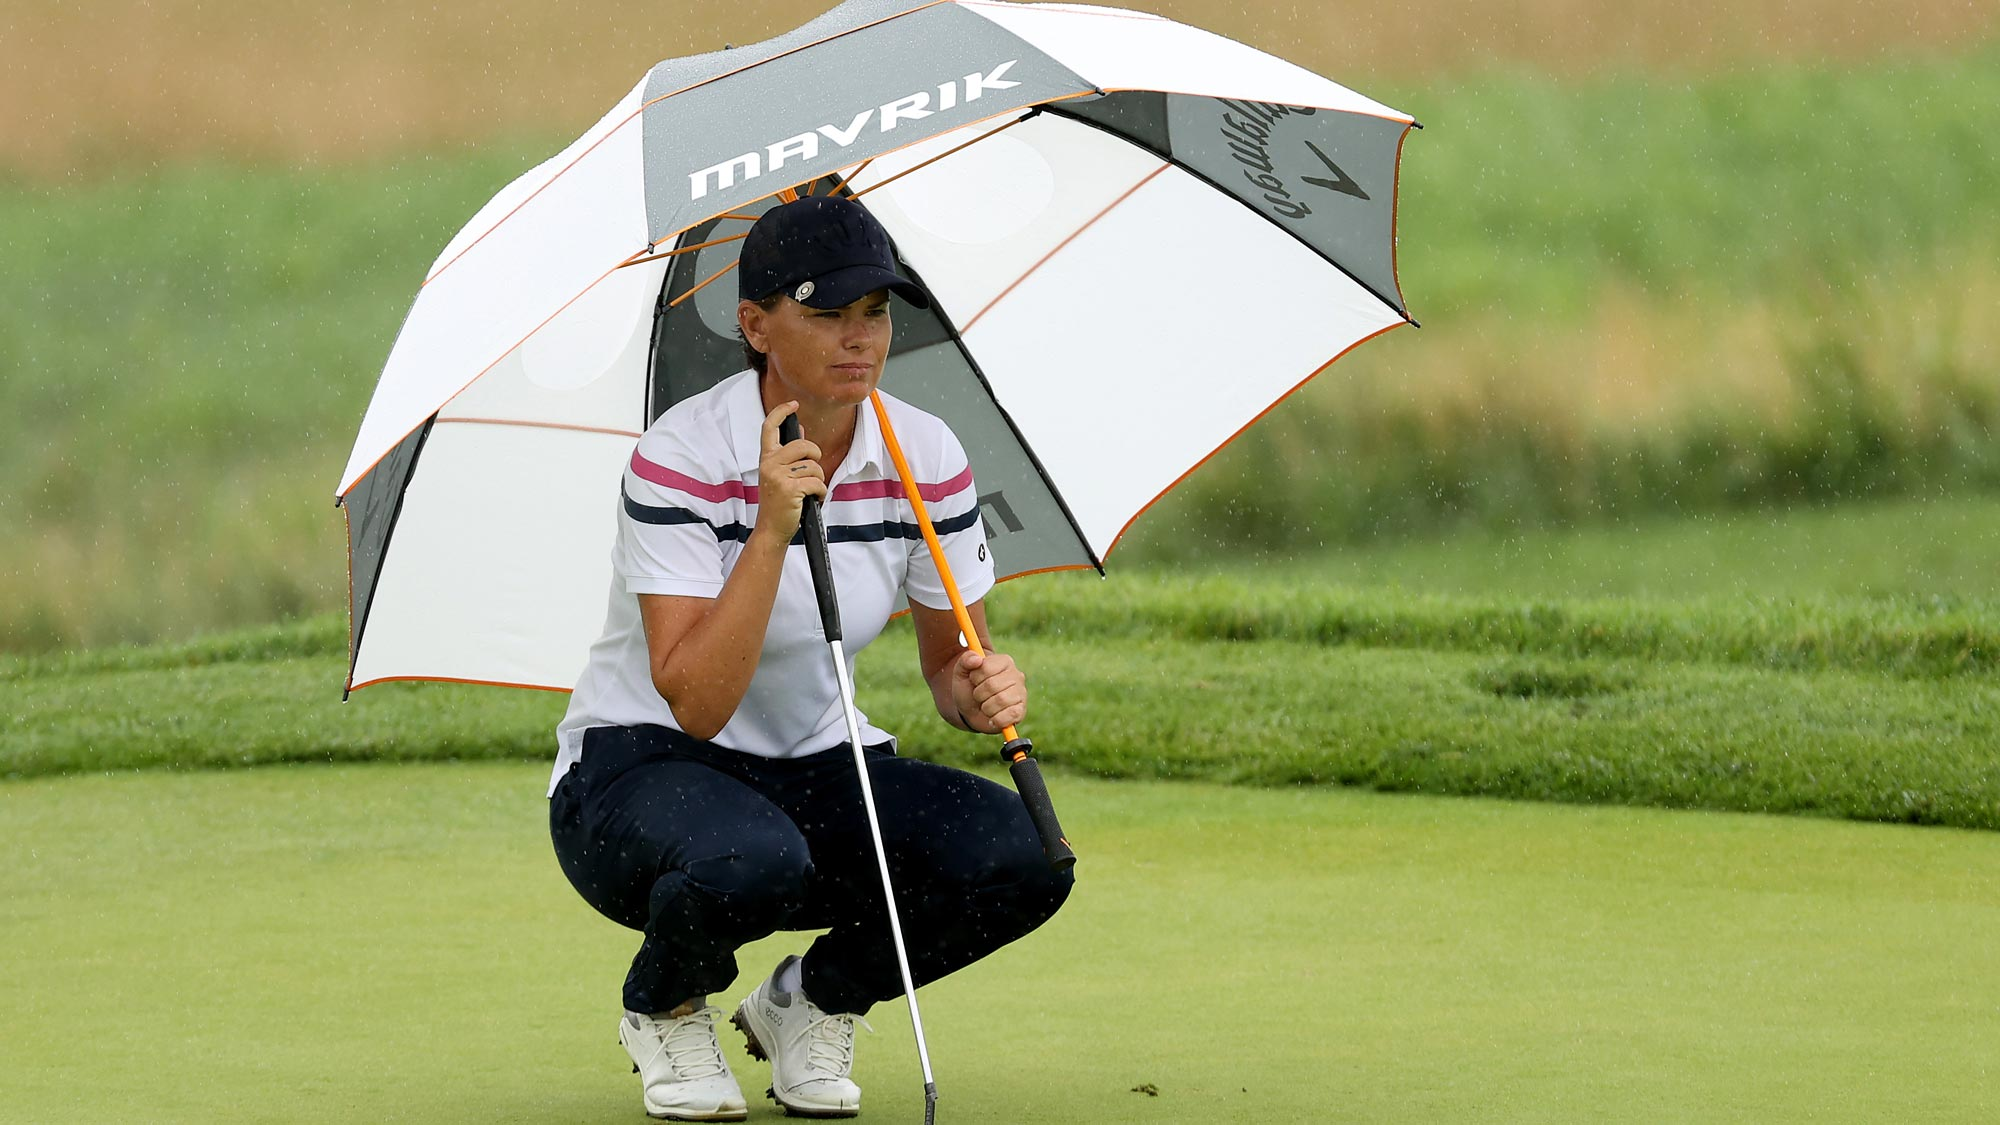 Lee-Anne Pace of South Africa lines up a putt on the fourth green under an umbrella to avoid the rain during the second round of the LPGA Drive On Championship